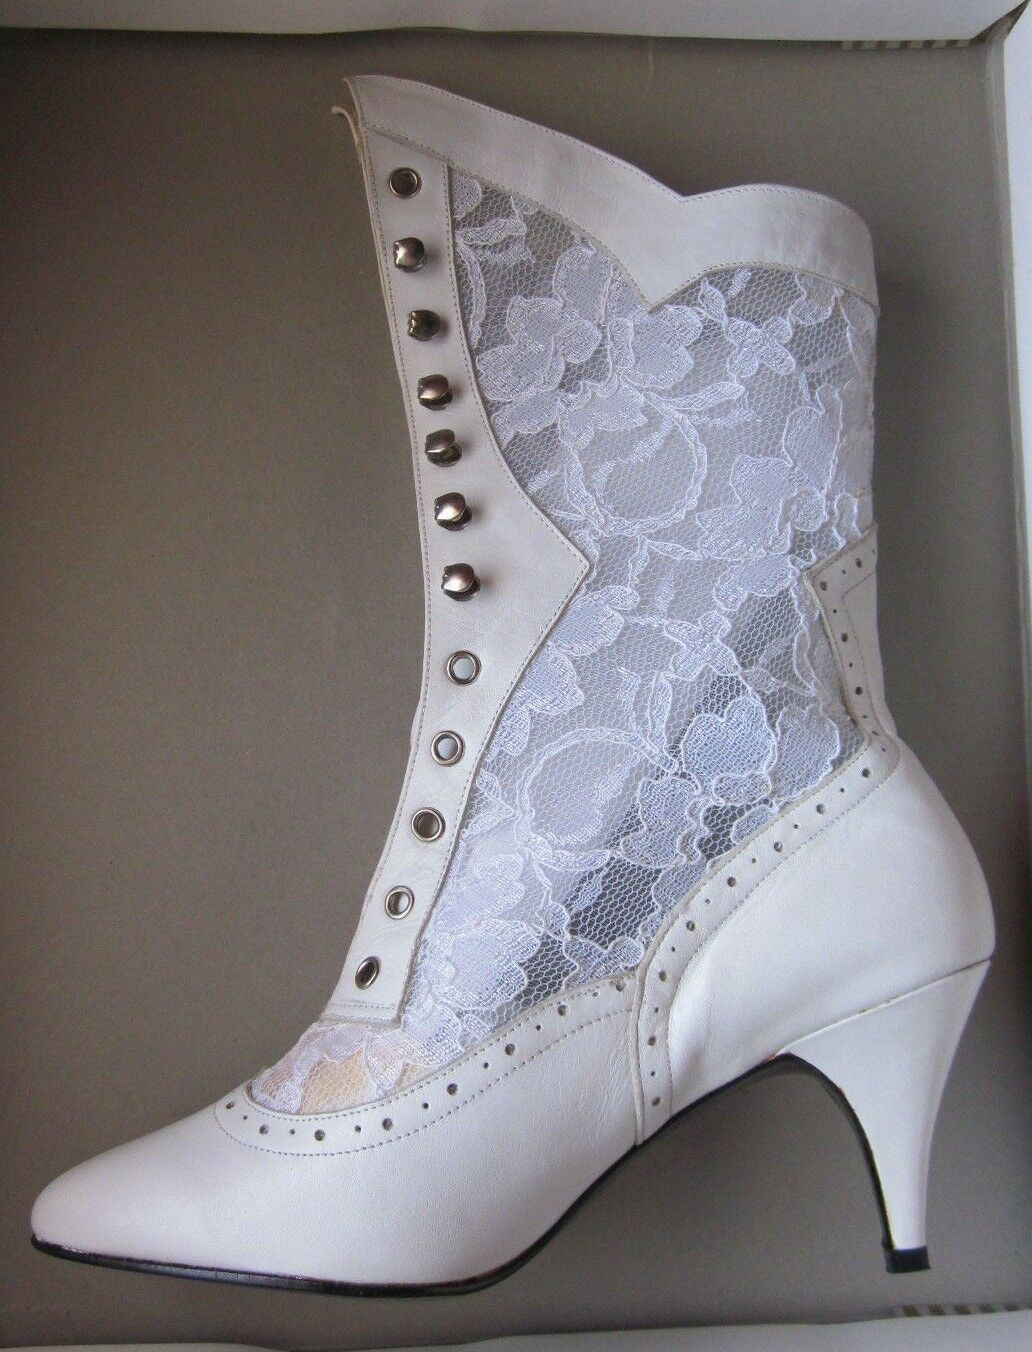 nwb WEDDING BOOT Wht calf Leder/lace up Western Victorian Granny SteamPunk 6